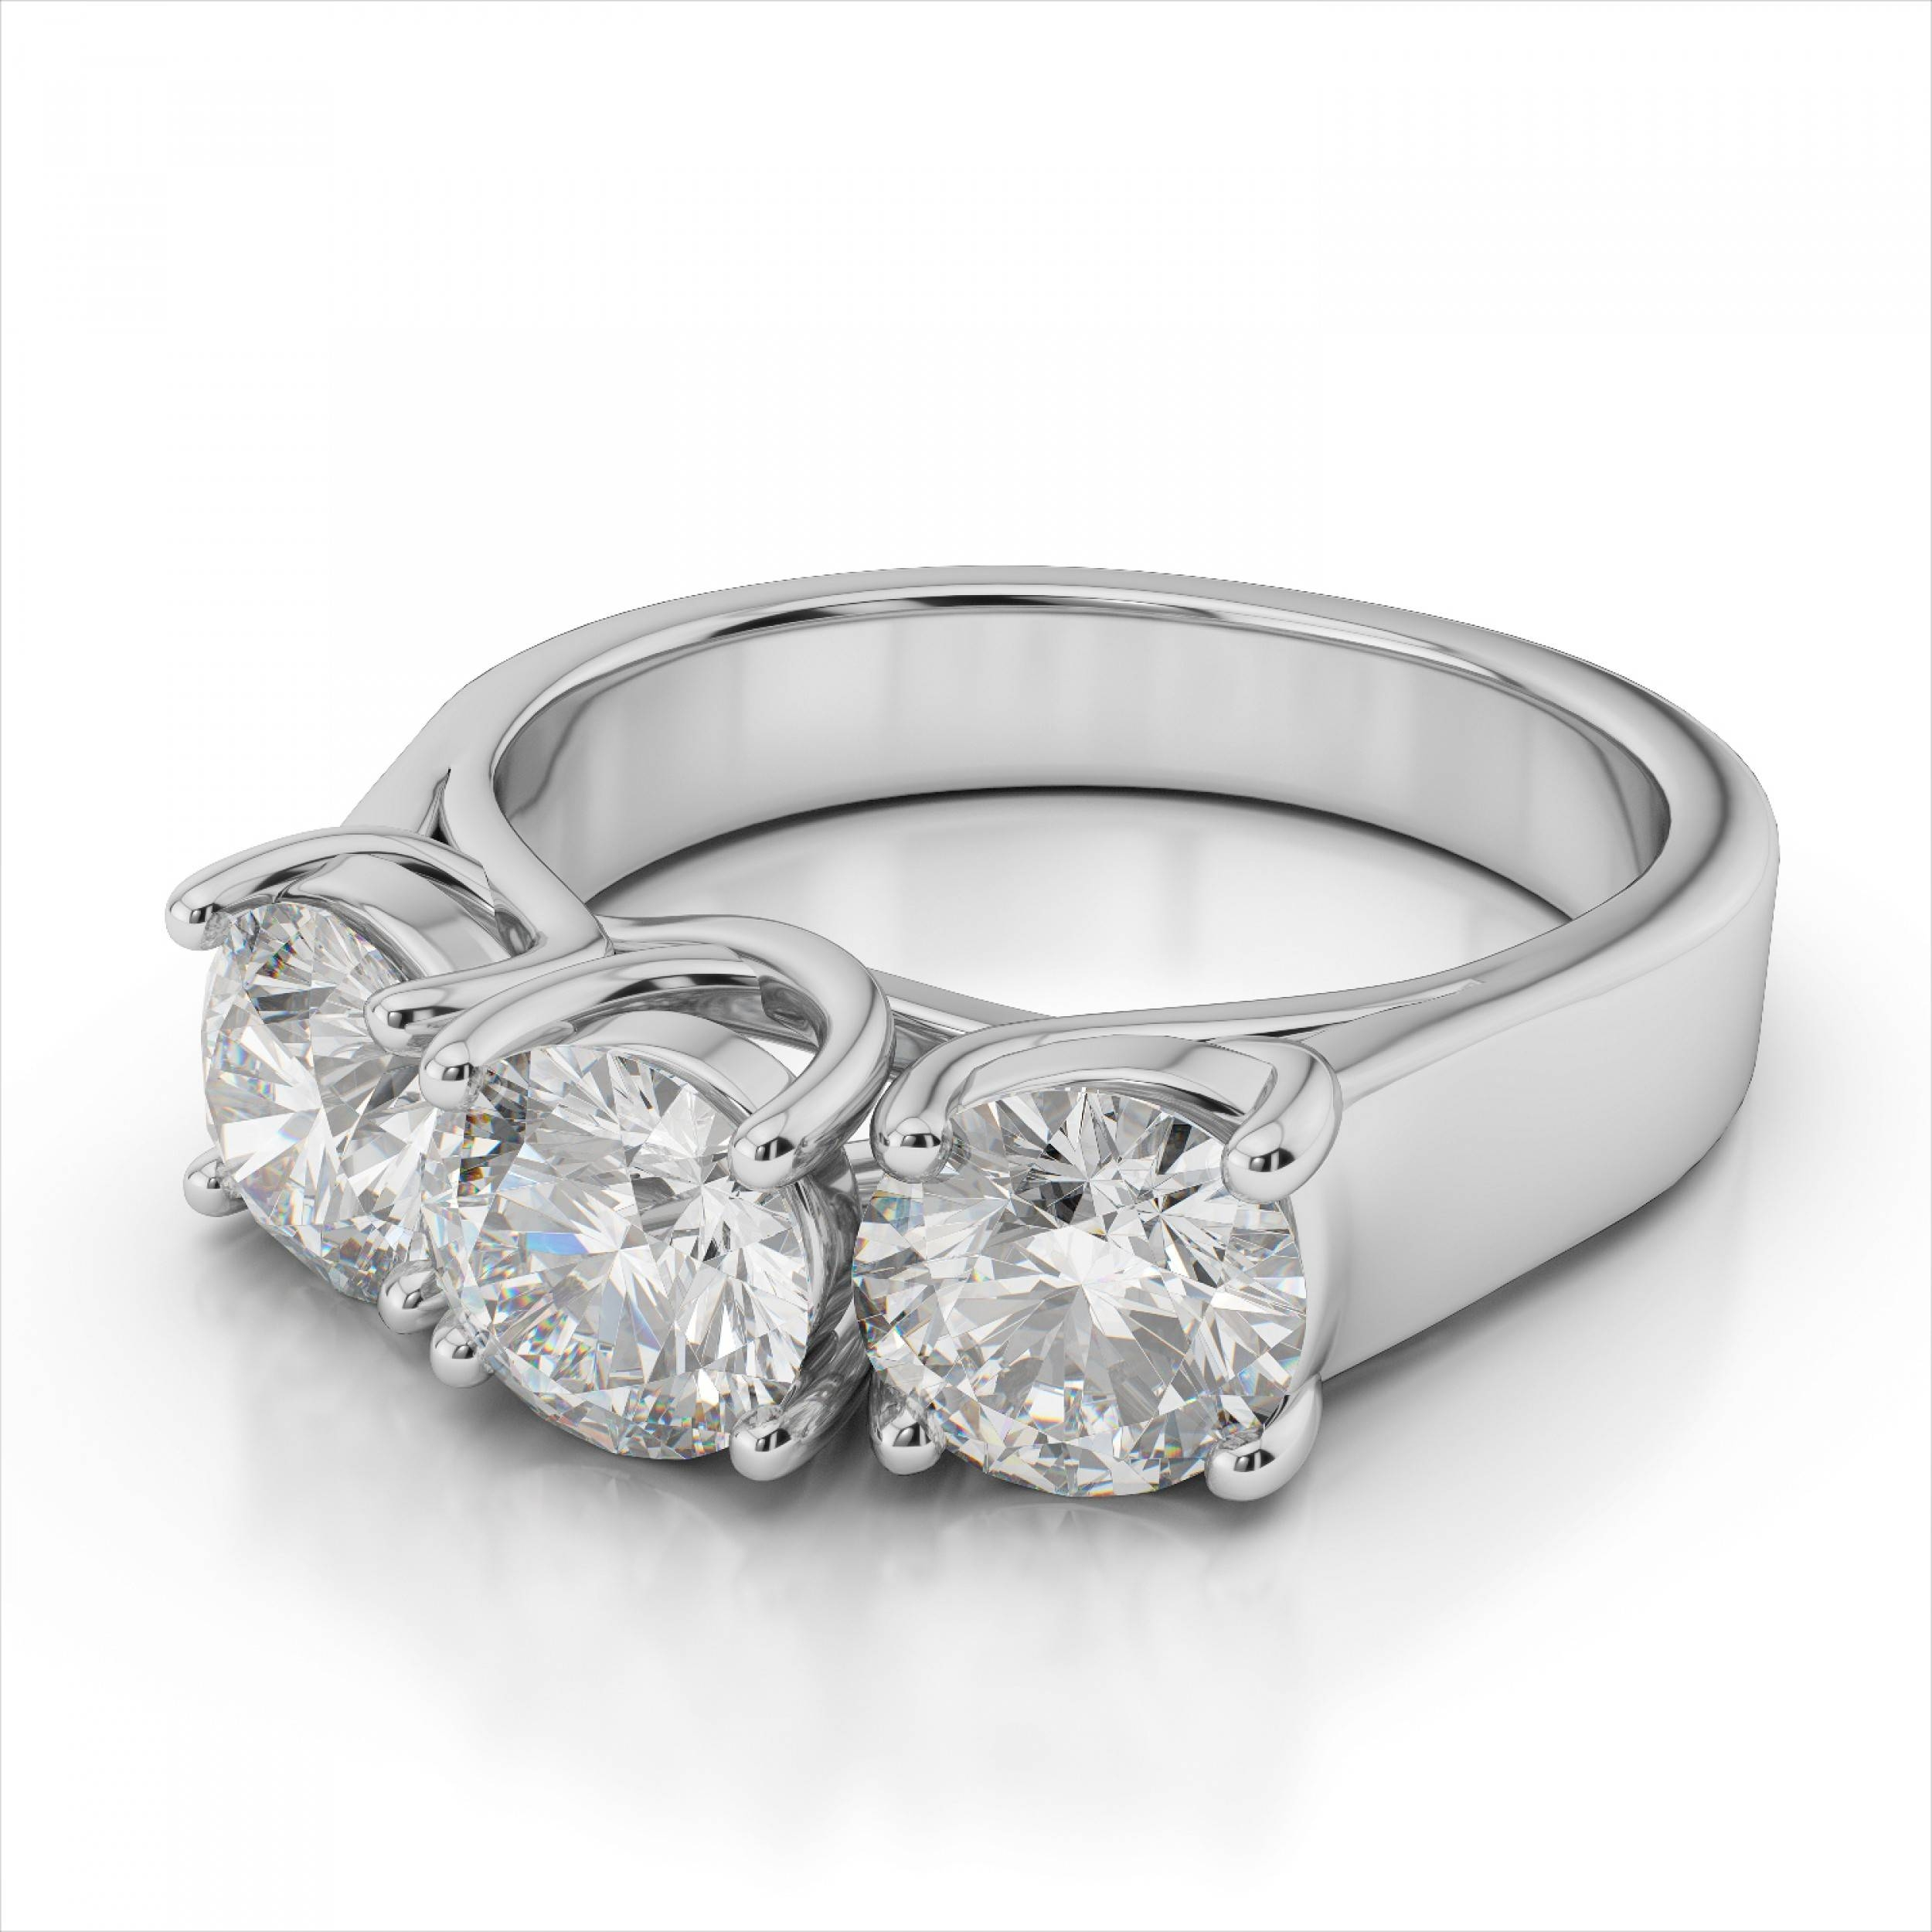 Three Stone Anniversary Diamond Rings | Wedding, Promise, Diamond Throughout Newest 3 Diamond Anniversary Rings (View 8 of 25)